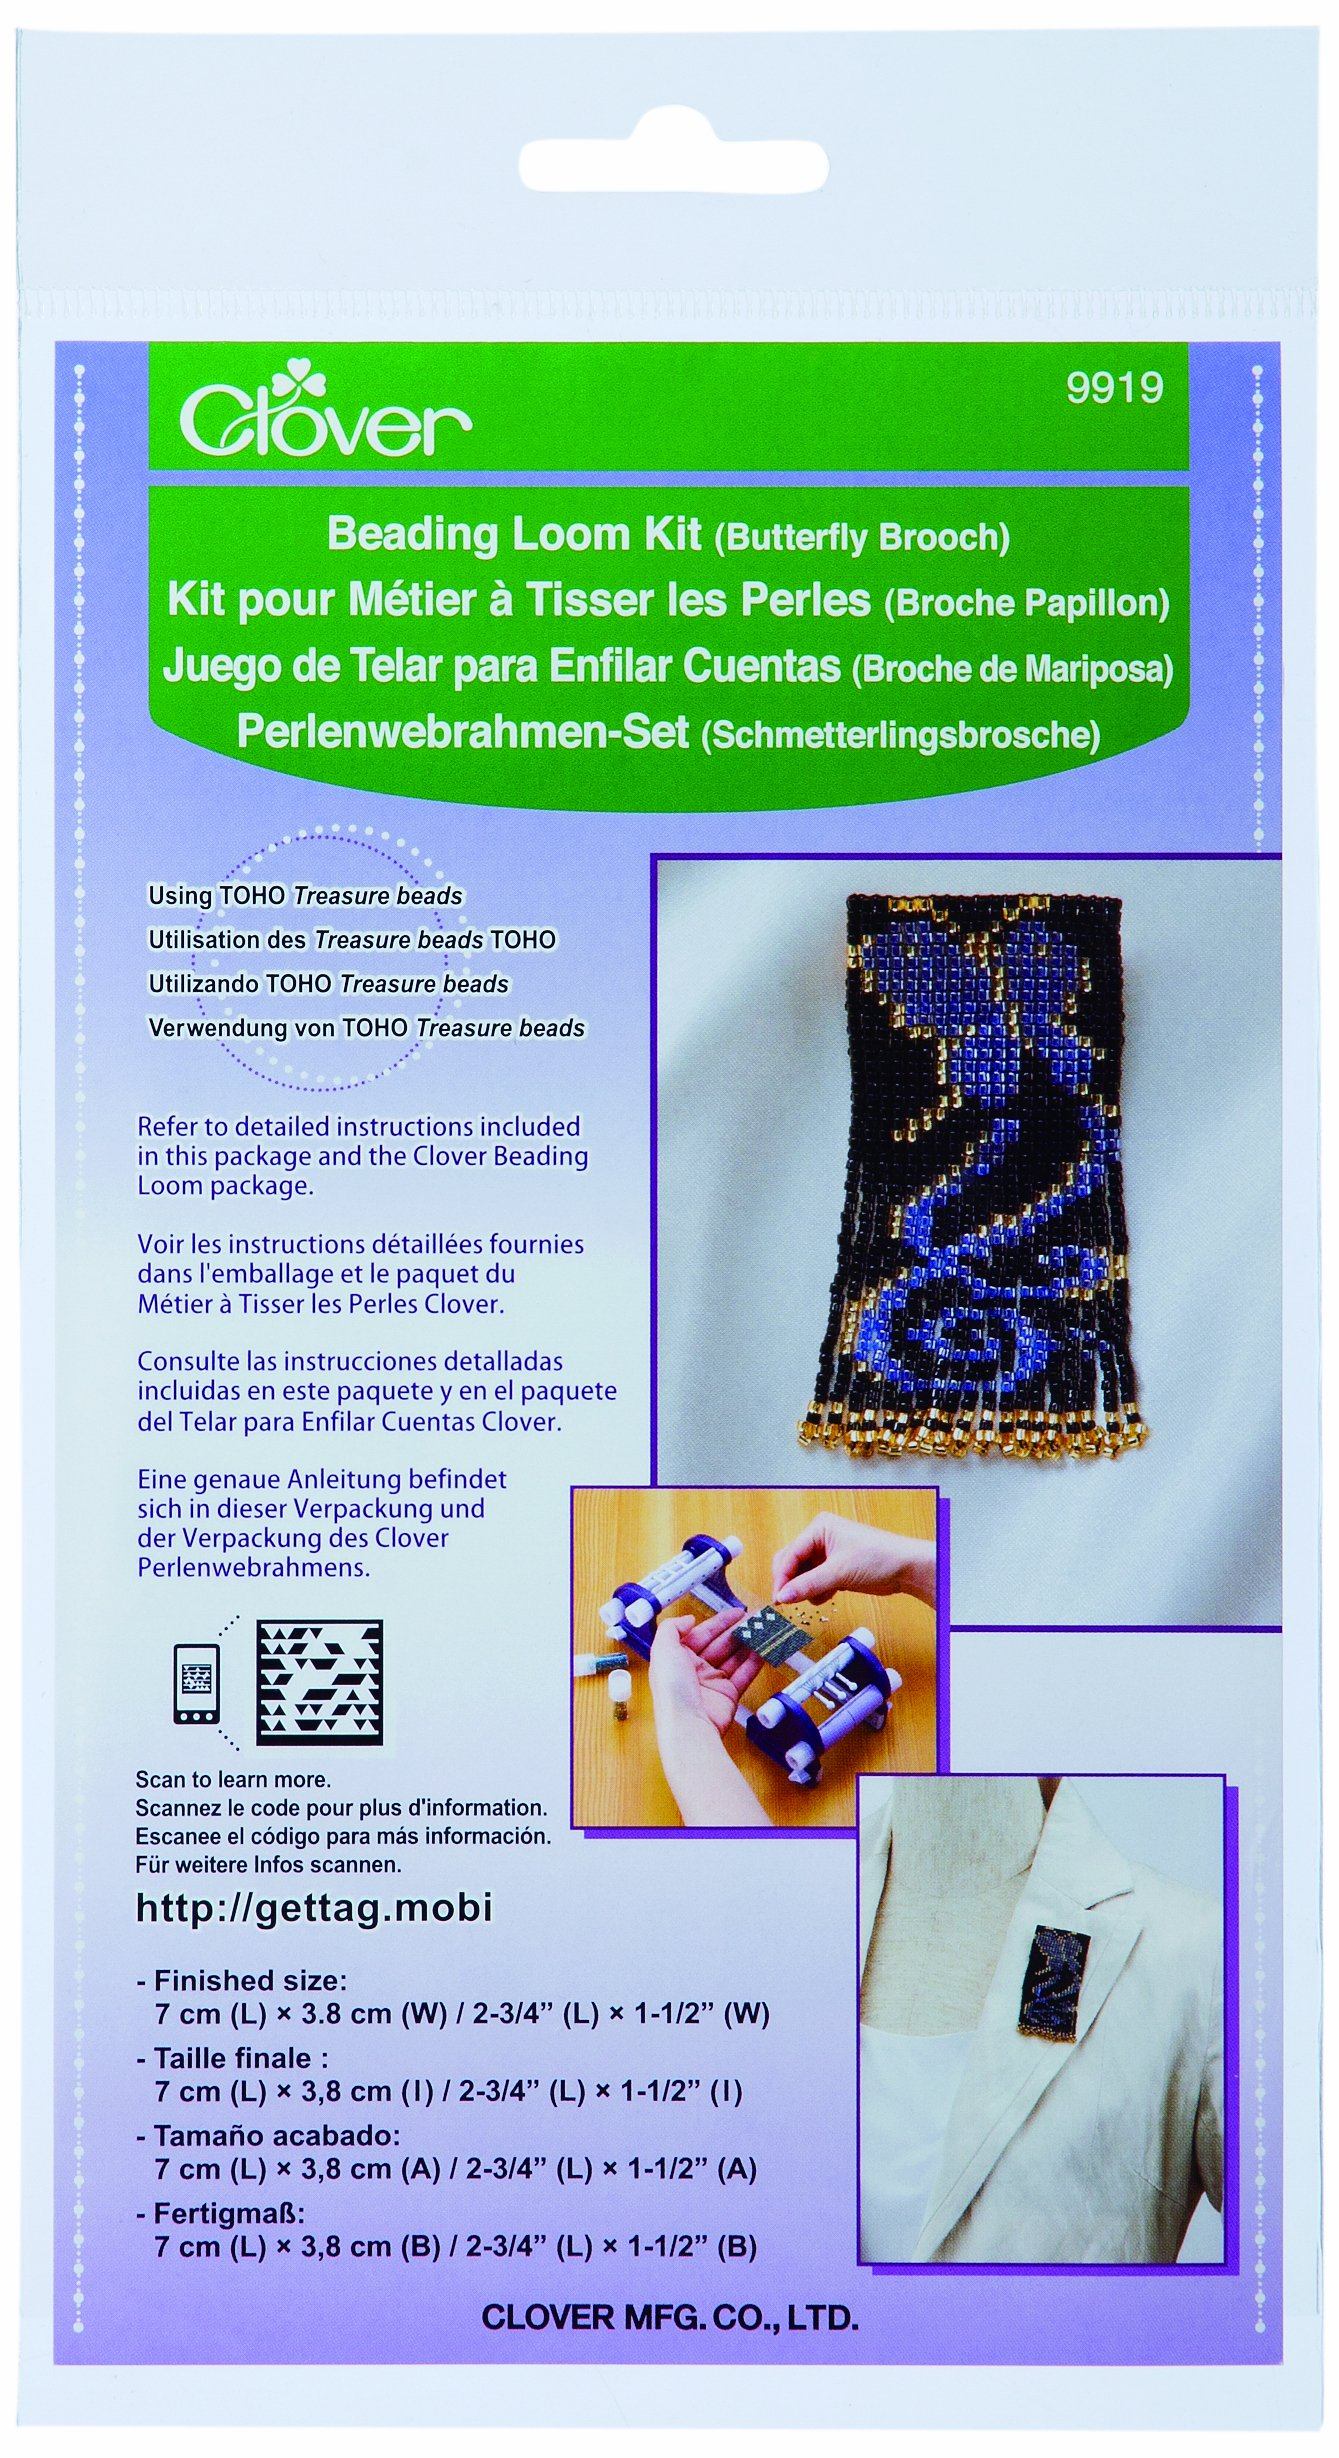 Clover 9919 Beading Loom Kit, Butterfly Brooch by Clover